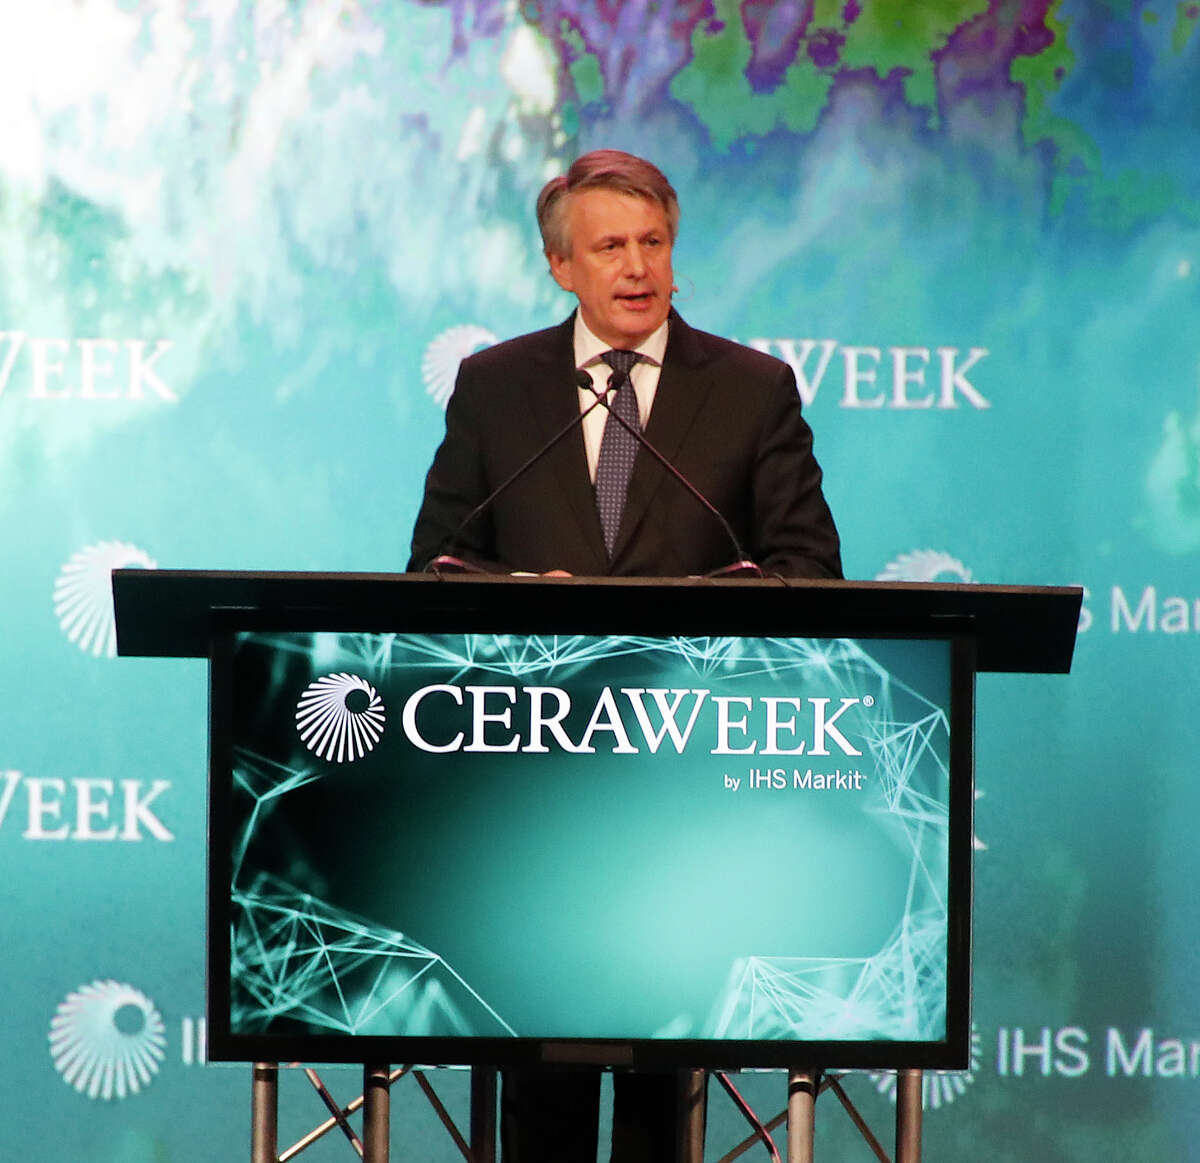 Royal Dutch Shell CEO Ben van Beurden speaks at the CERAWeek conference at the Hilton Americas, Wednesday, March 7, 2018, in Houston.